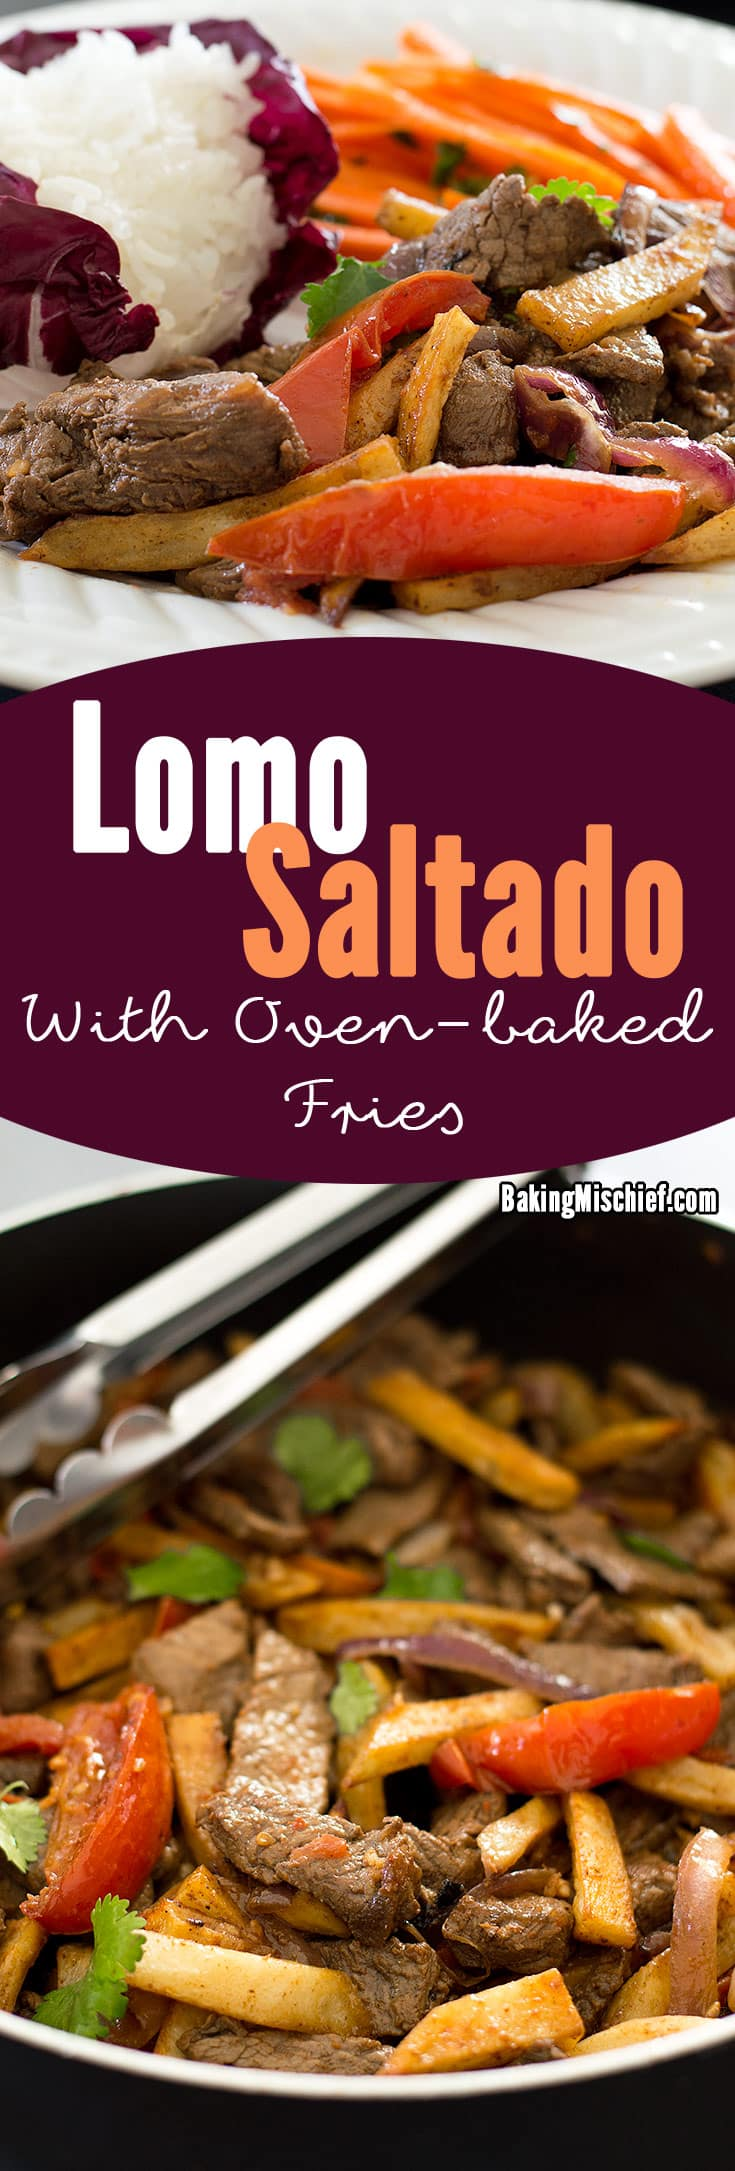 Lomo Saltado: Tender stir-fried beef sirloin, red onions, and tomatoes served with baked french fries and white rice. Carb lovers, you have to try this one! Recipe includes nutritional information. From Baking Mischief.com